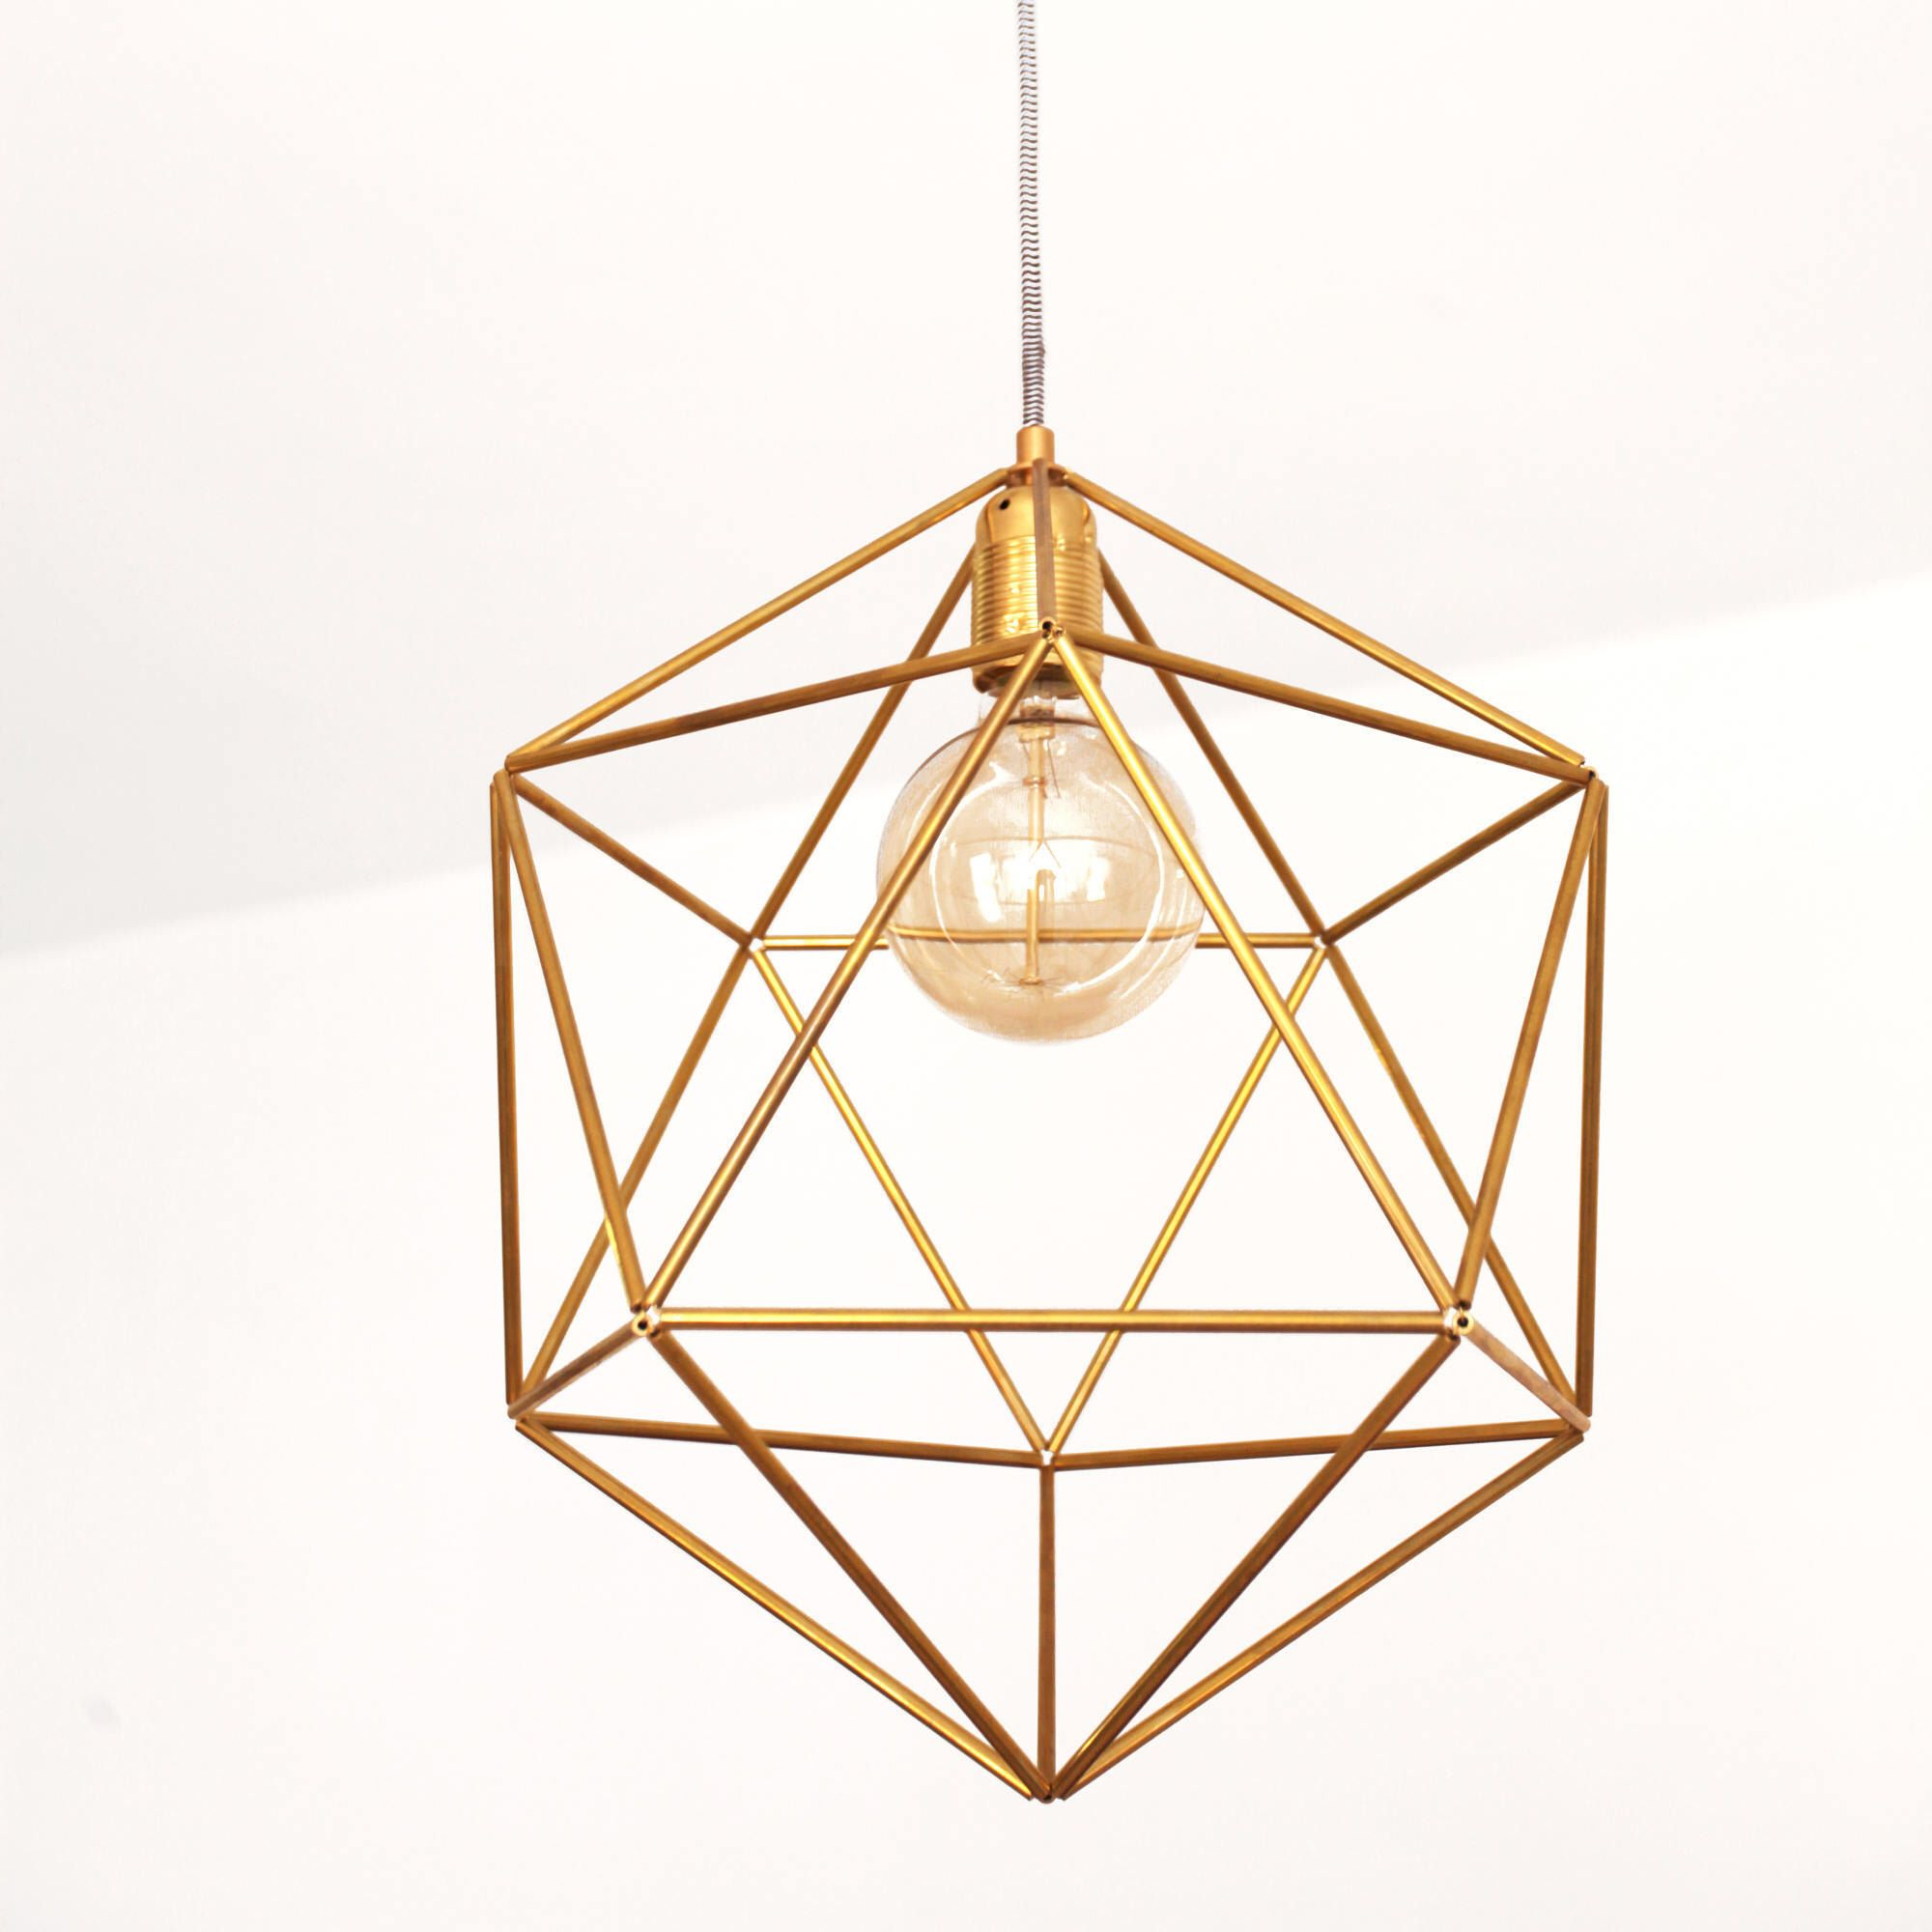 Large Ceiling Light Fixture Cage Brass Pendant Lamp Shade Geometric Chandelier Light Modern Mid Century Dining Room Lighting Icos18 Ceiling Lights Modern Ceiling Light Dining Room Lighting